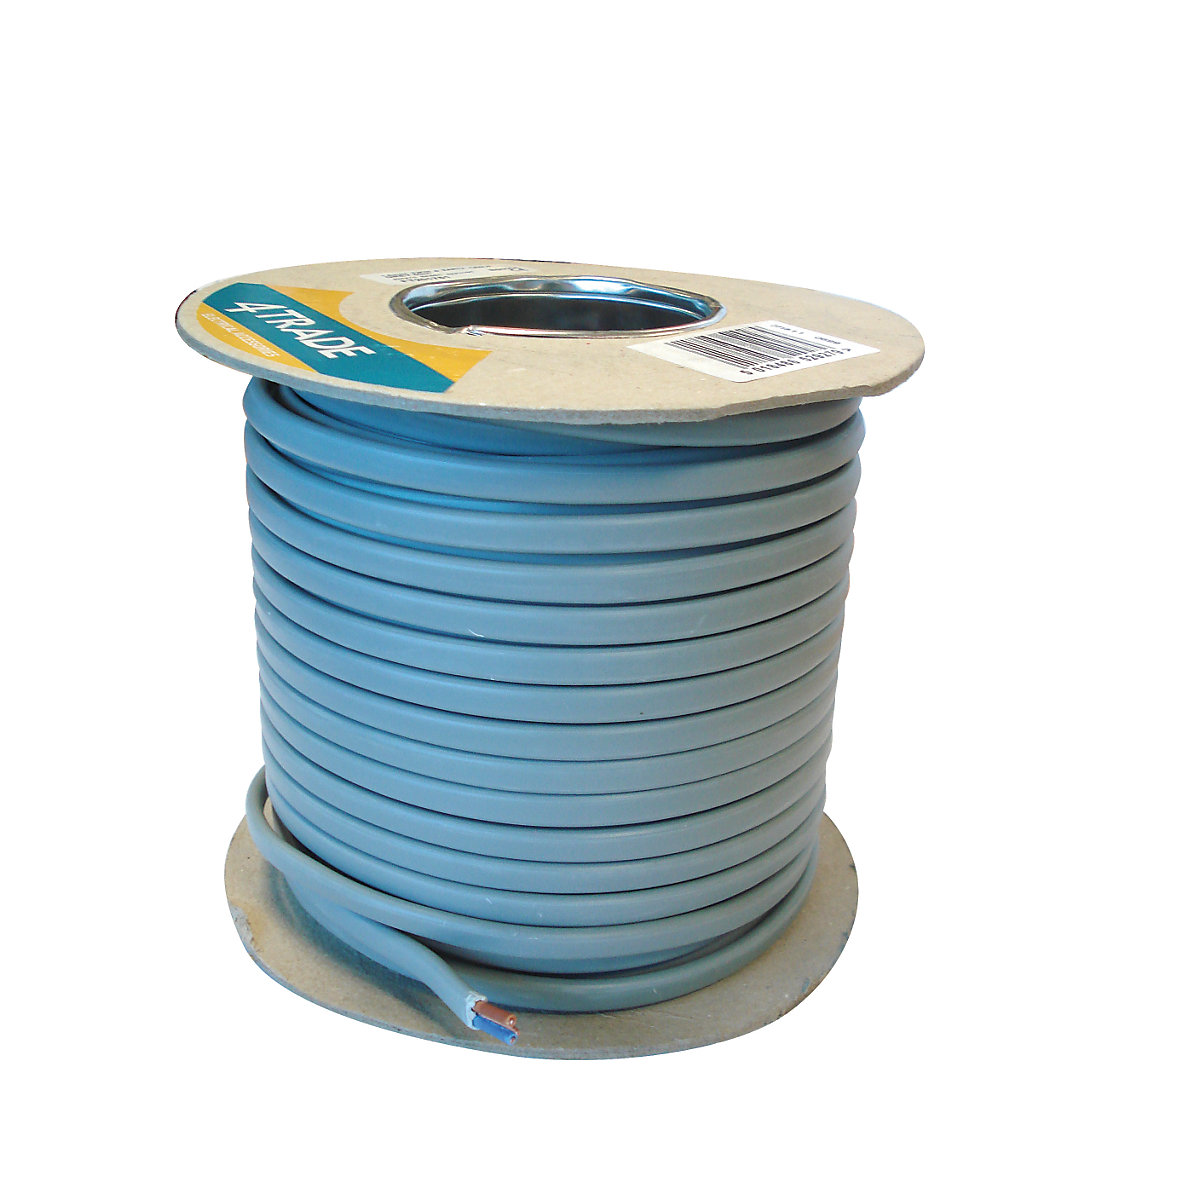 4Trade Twin & Earth Cable 6242Y Grey 1.5mm x 50m | Travis Perkins